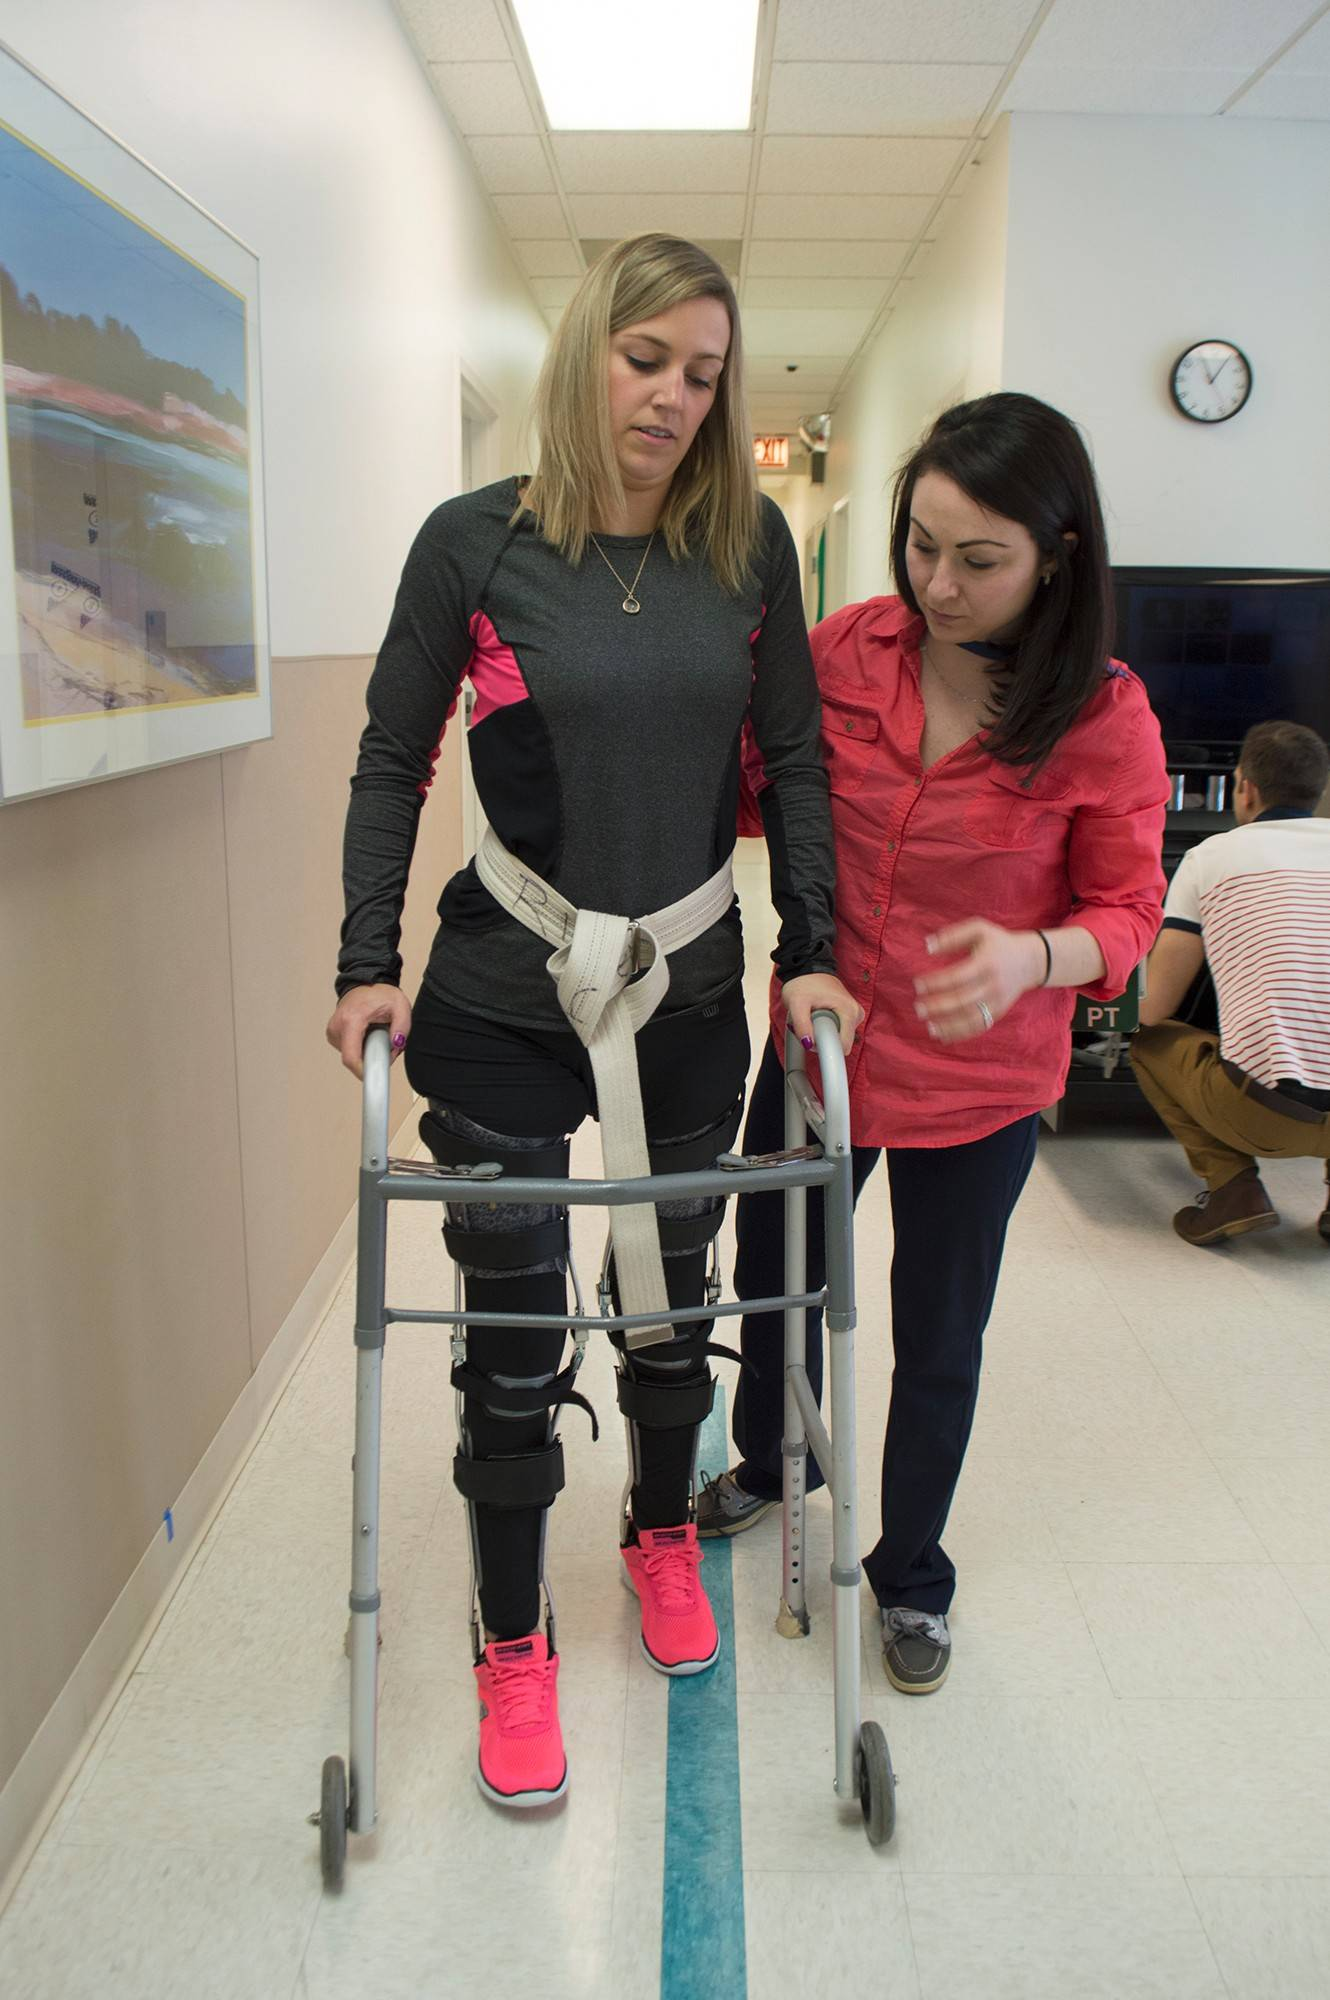 Her knees held rigid by braces, Kelsey Ibach uses a walker for support as she takes steps with the help of therapist Megan Greenwood last year at the Rehabilitation Institute of Chicago. The Arlington Heights native, a passenger in a 2014 car crash that left her paralyzed below the waist, recently earned her scuba diving certification and will go surfing again this winter.